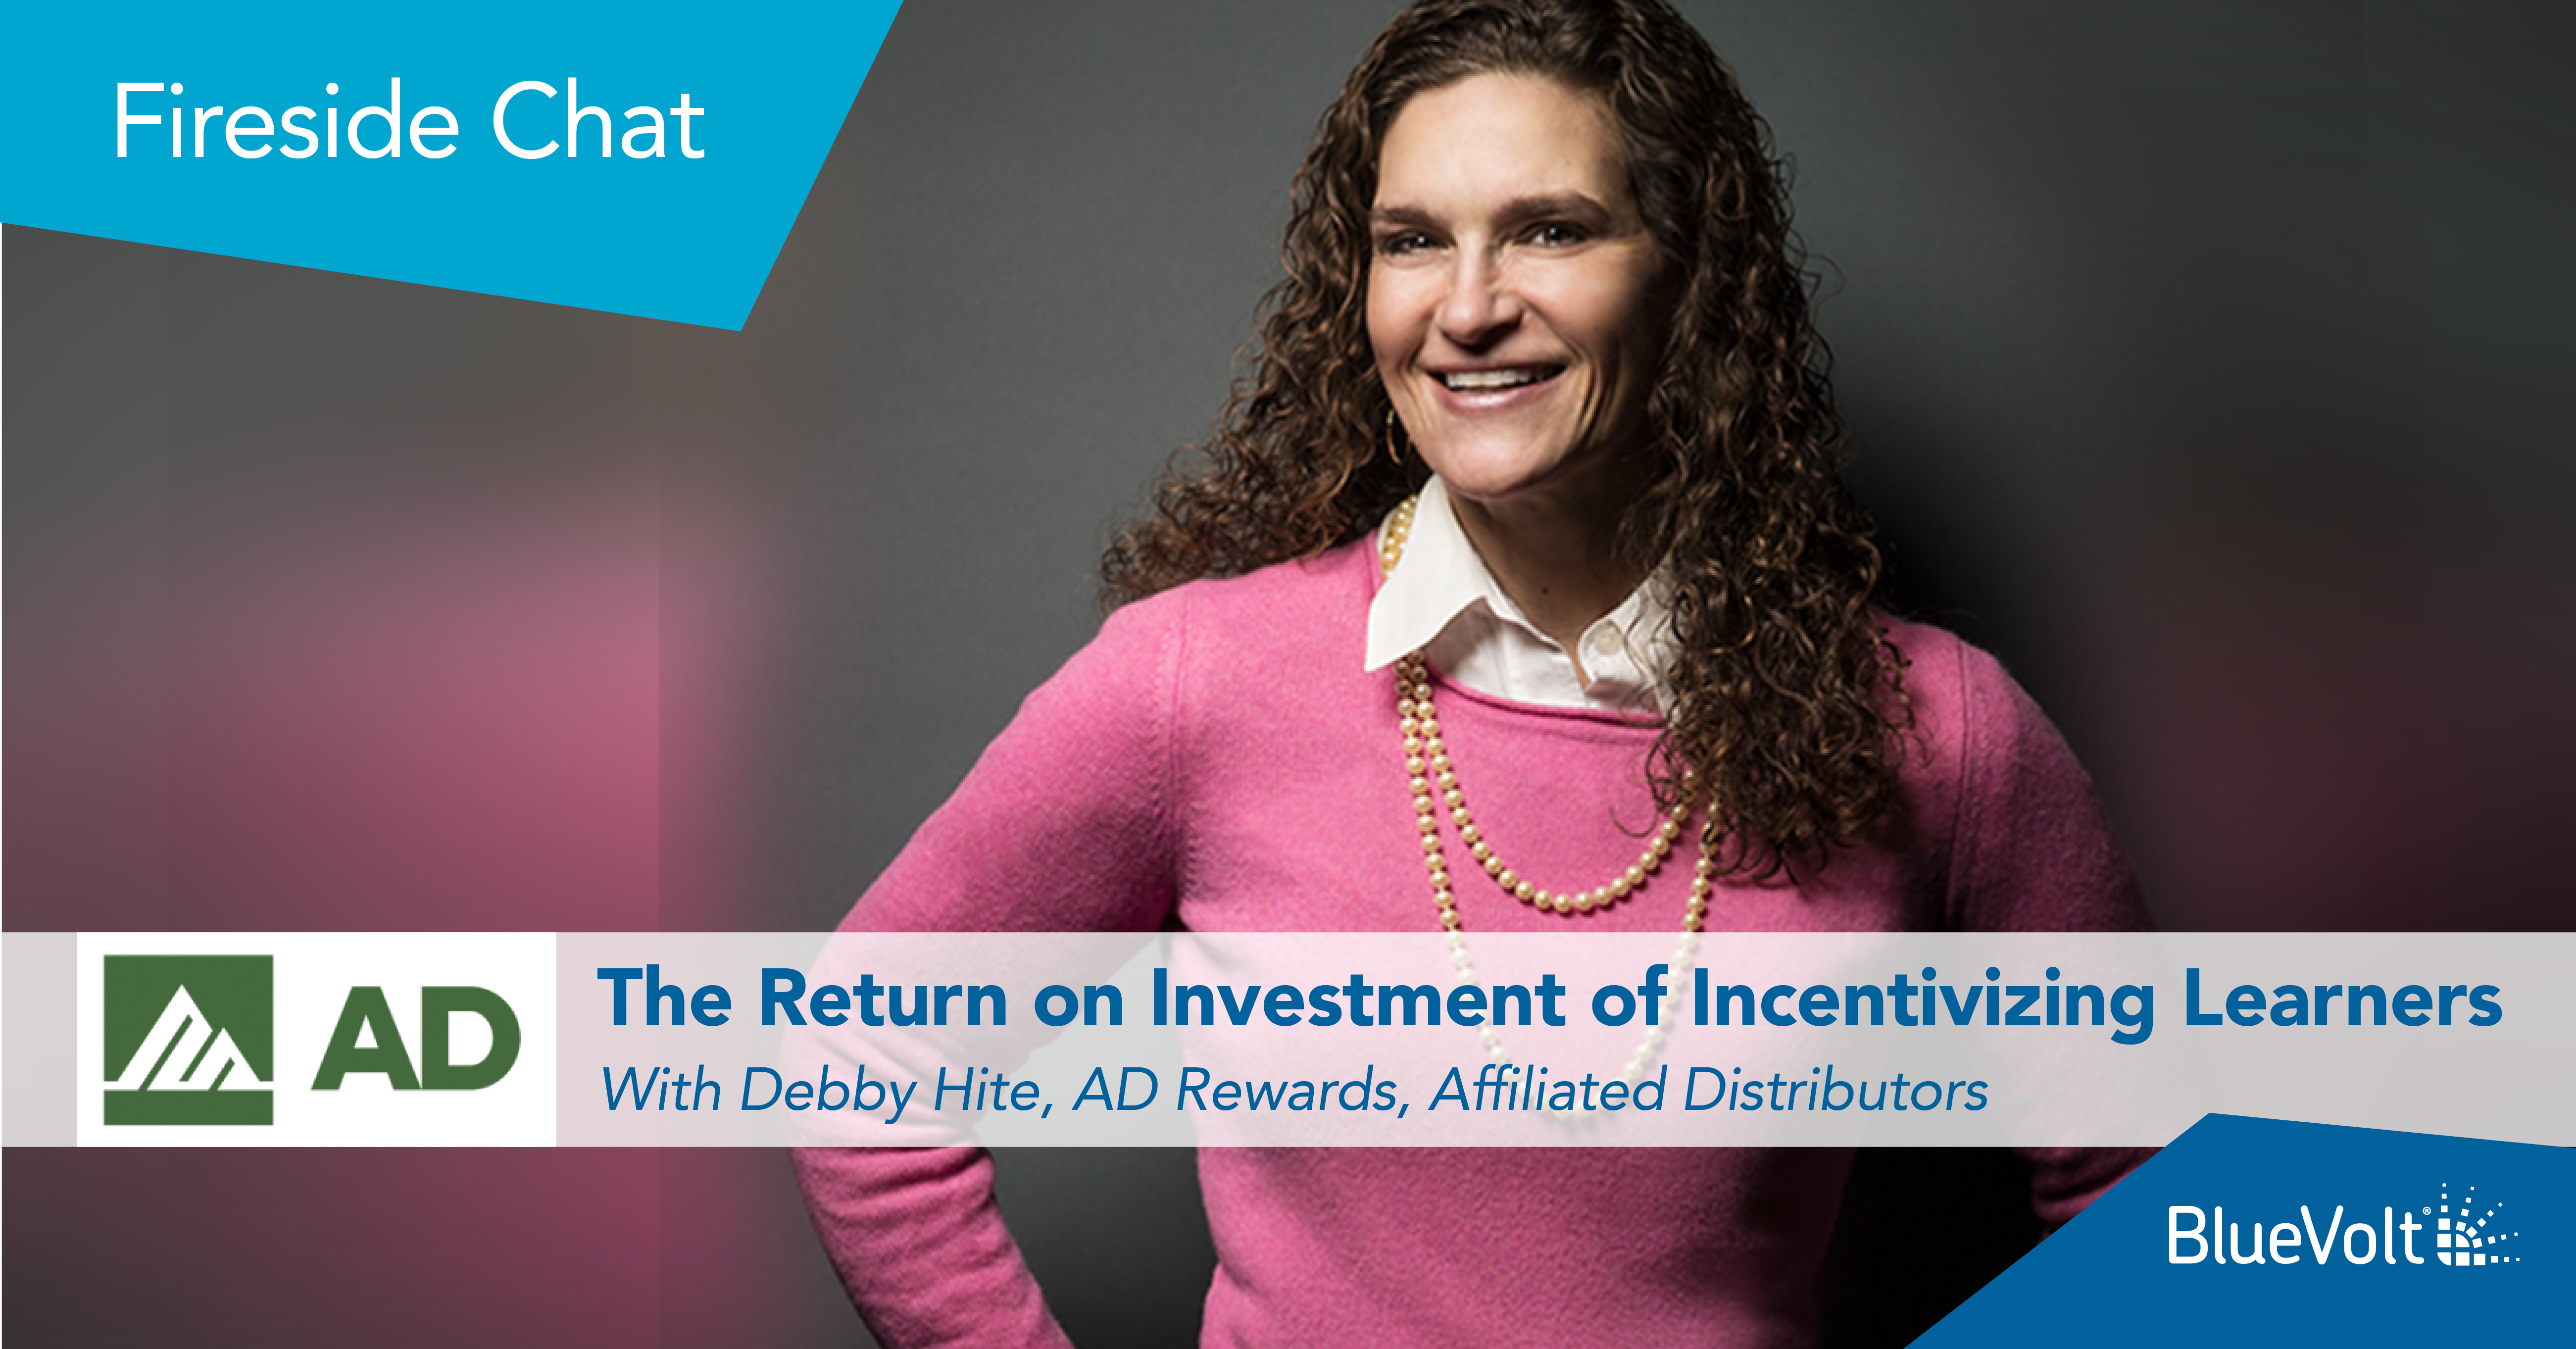 The ROI of Incentivizing Learners